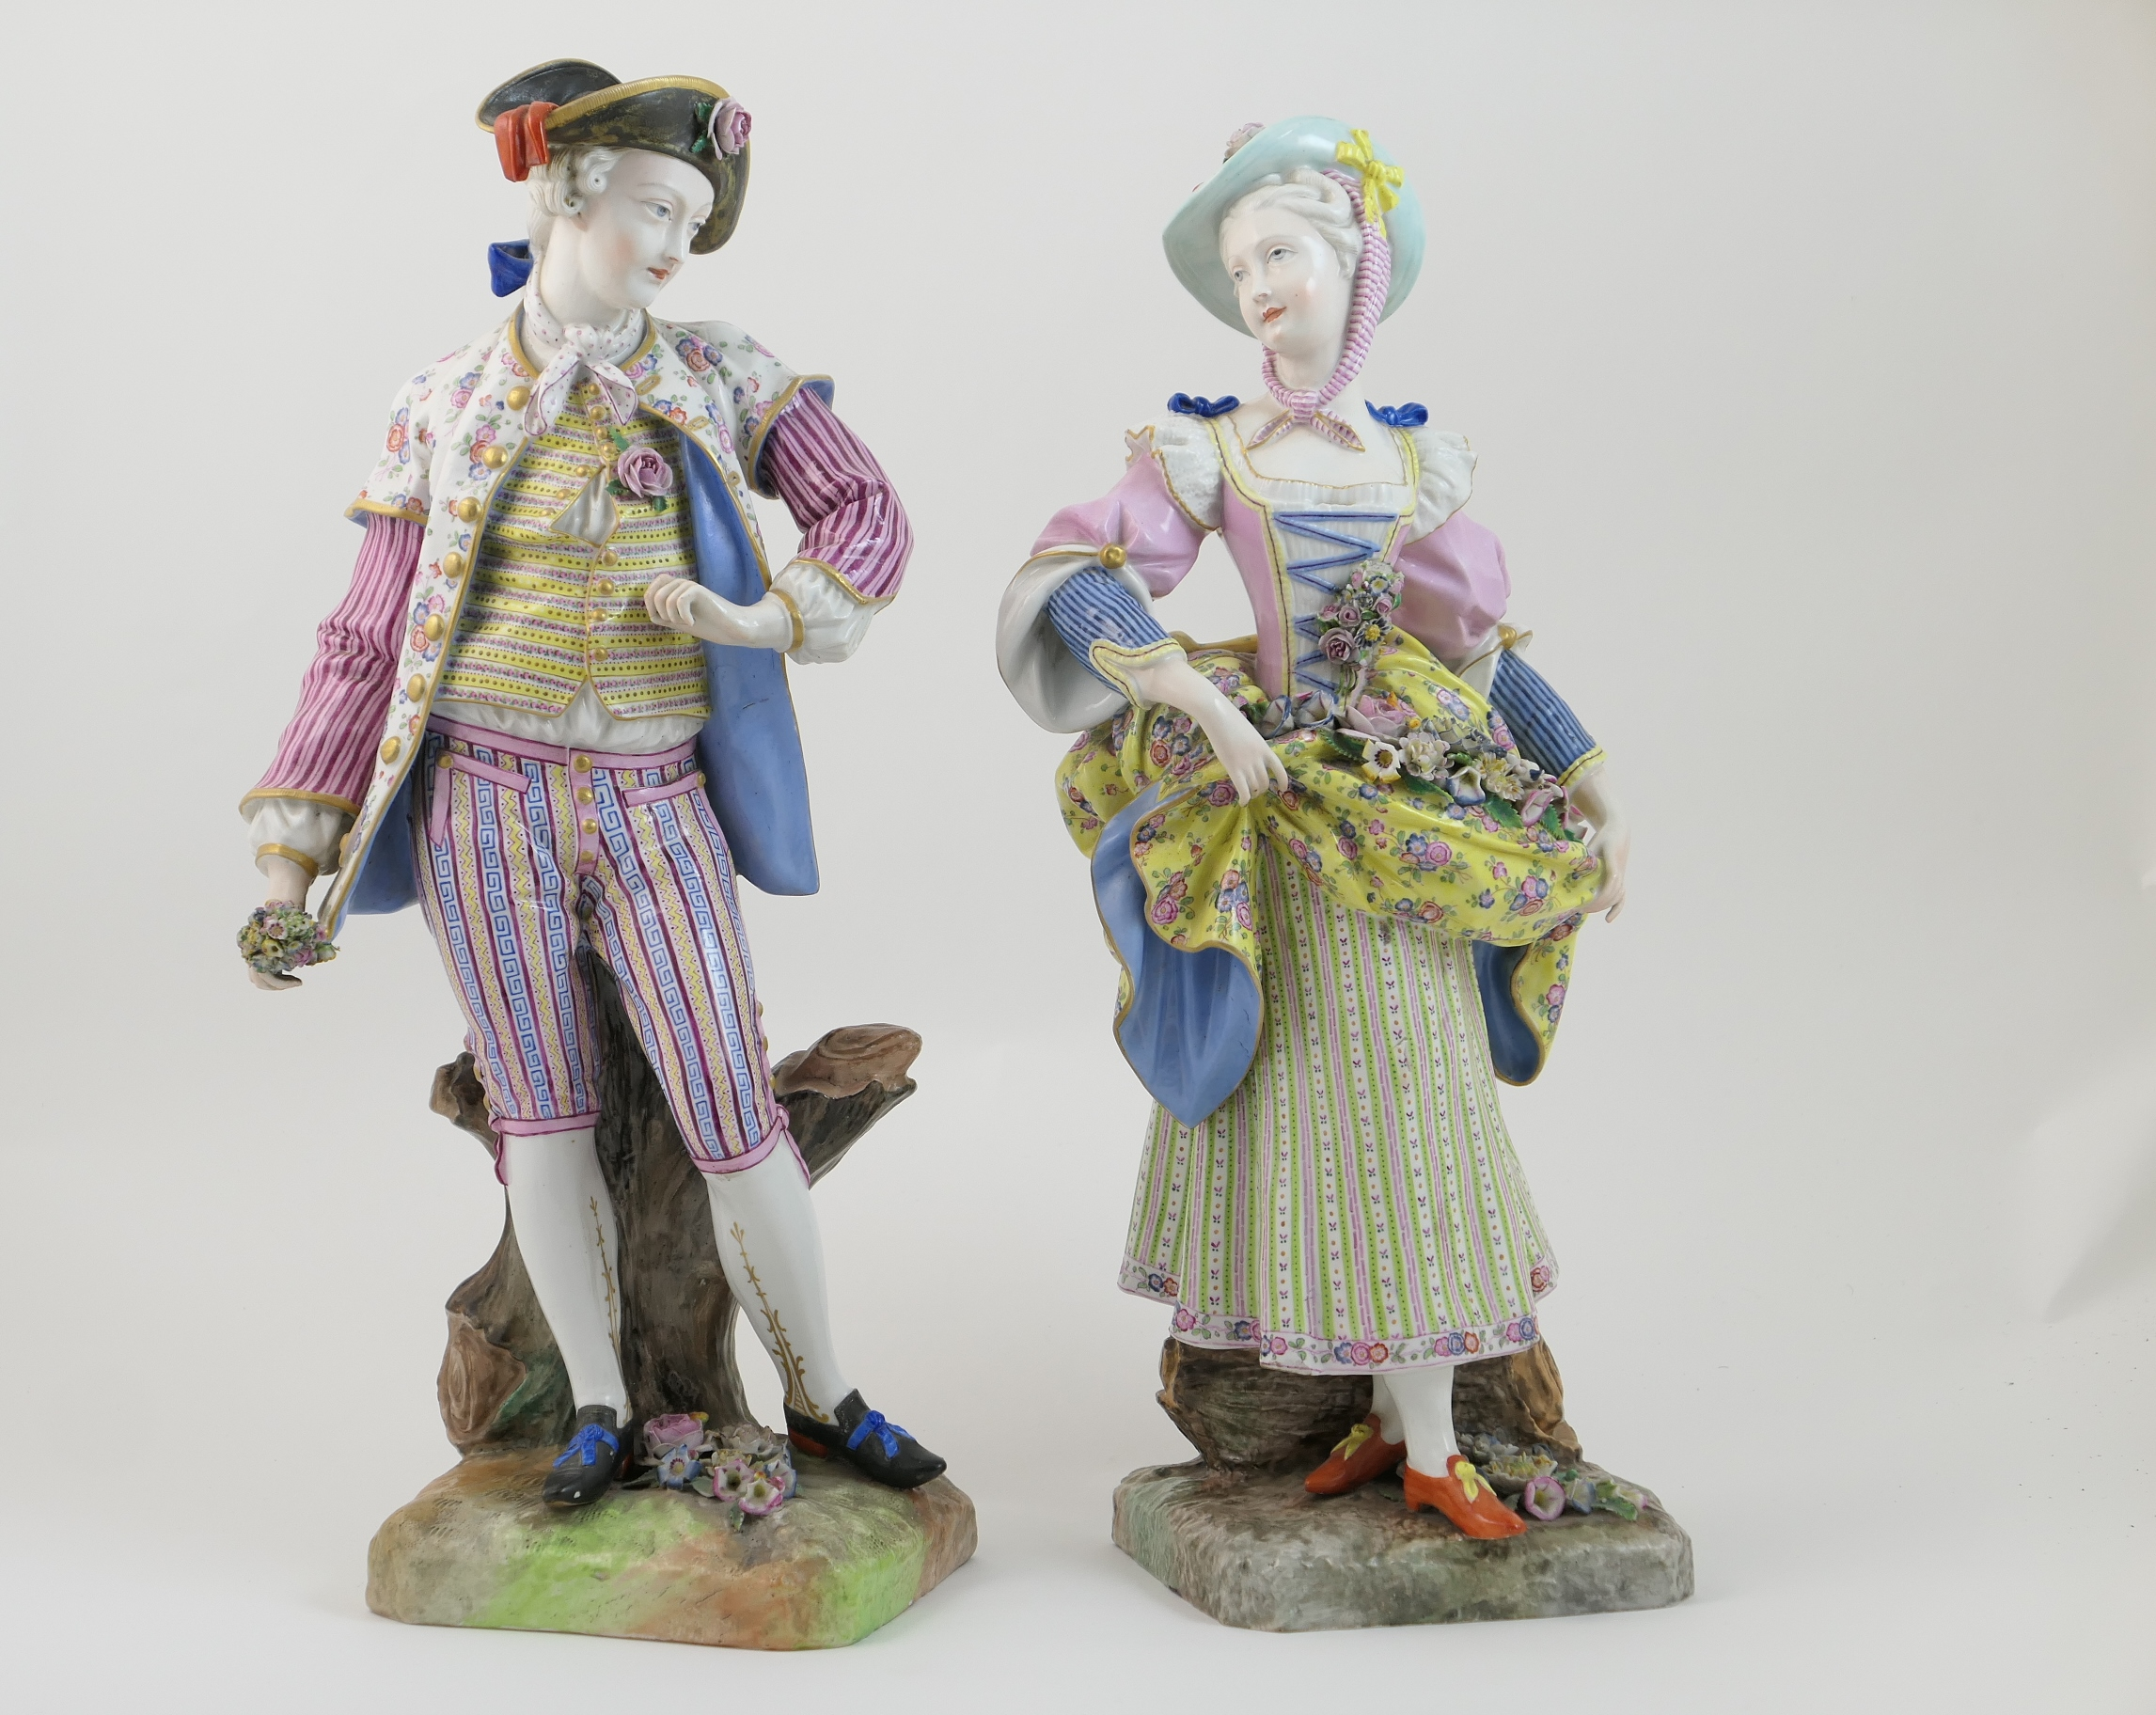 Lot 60 - Pair of Dresden porcelain figures of gardeners, after Meissen, circa 1870, each modelled in 18th